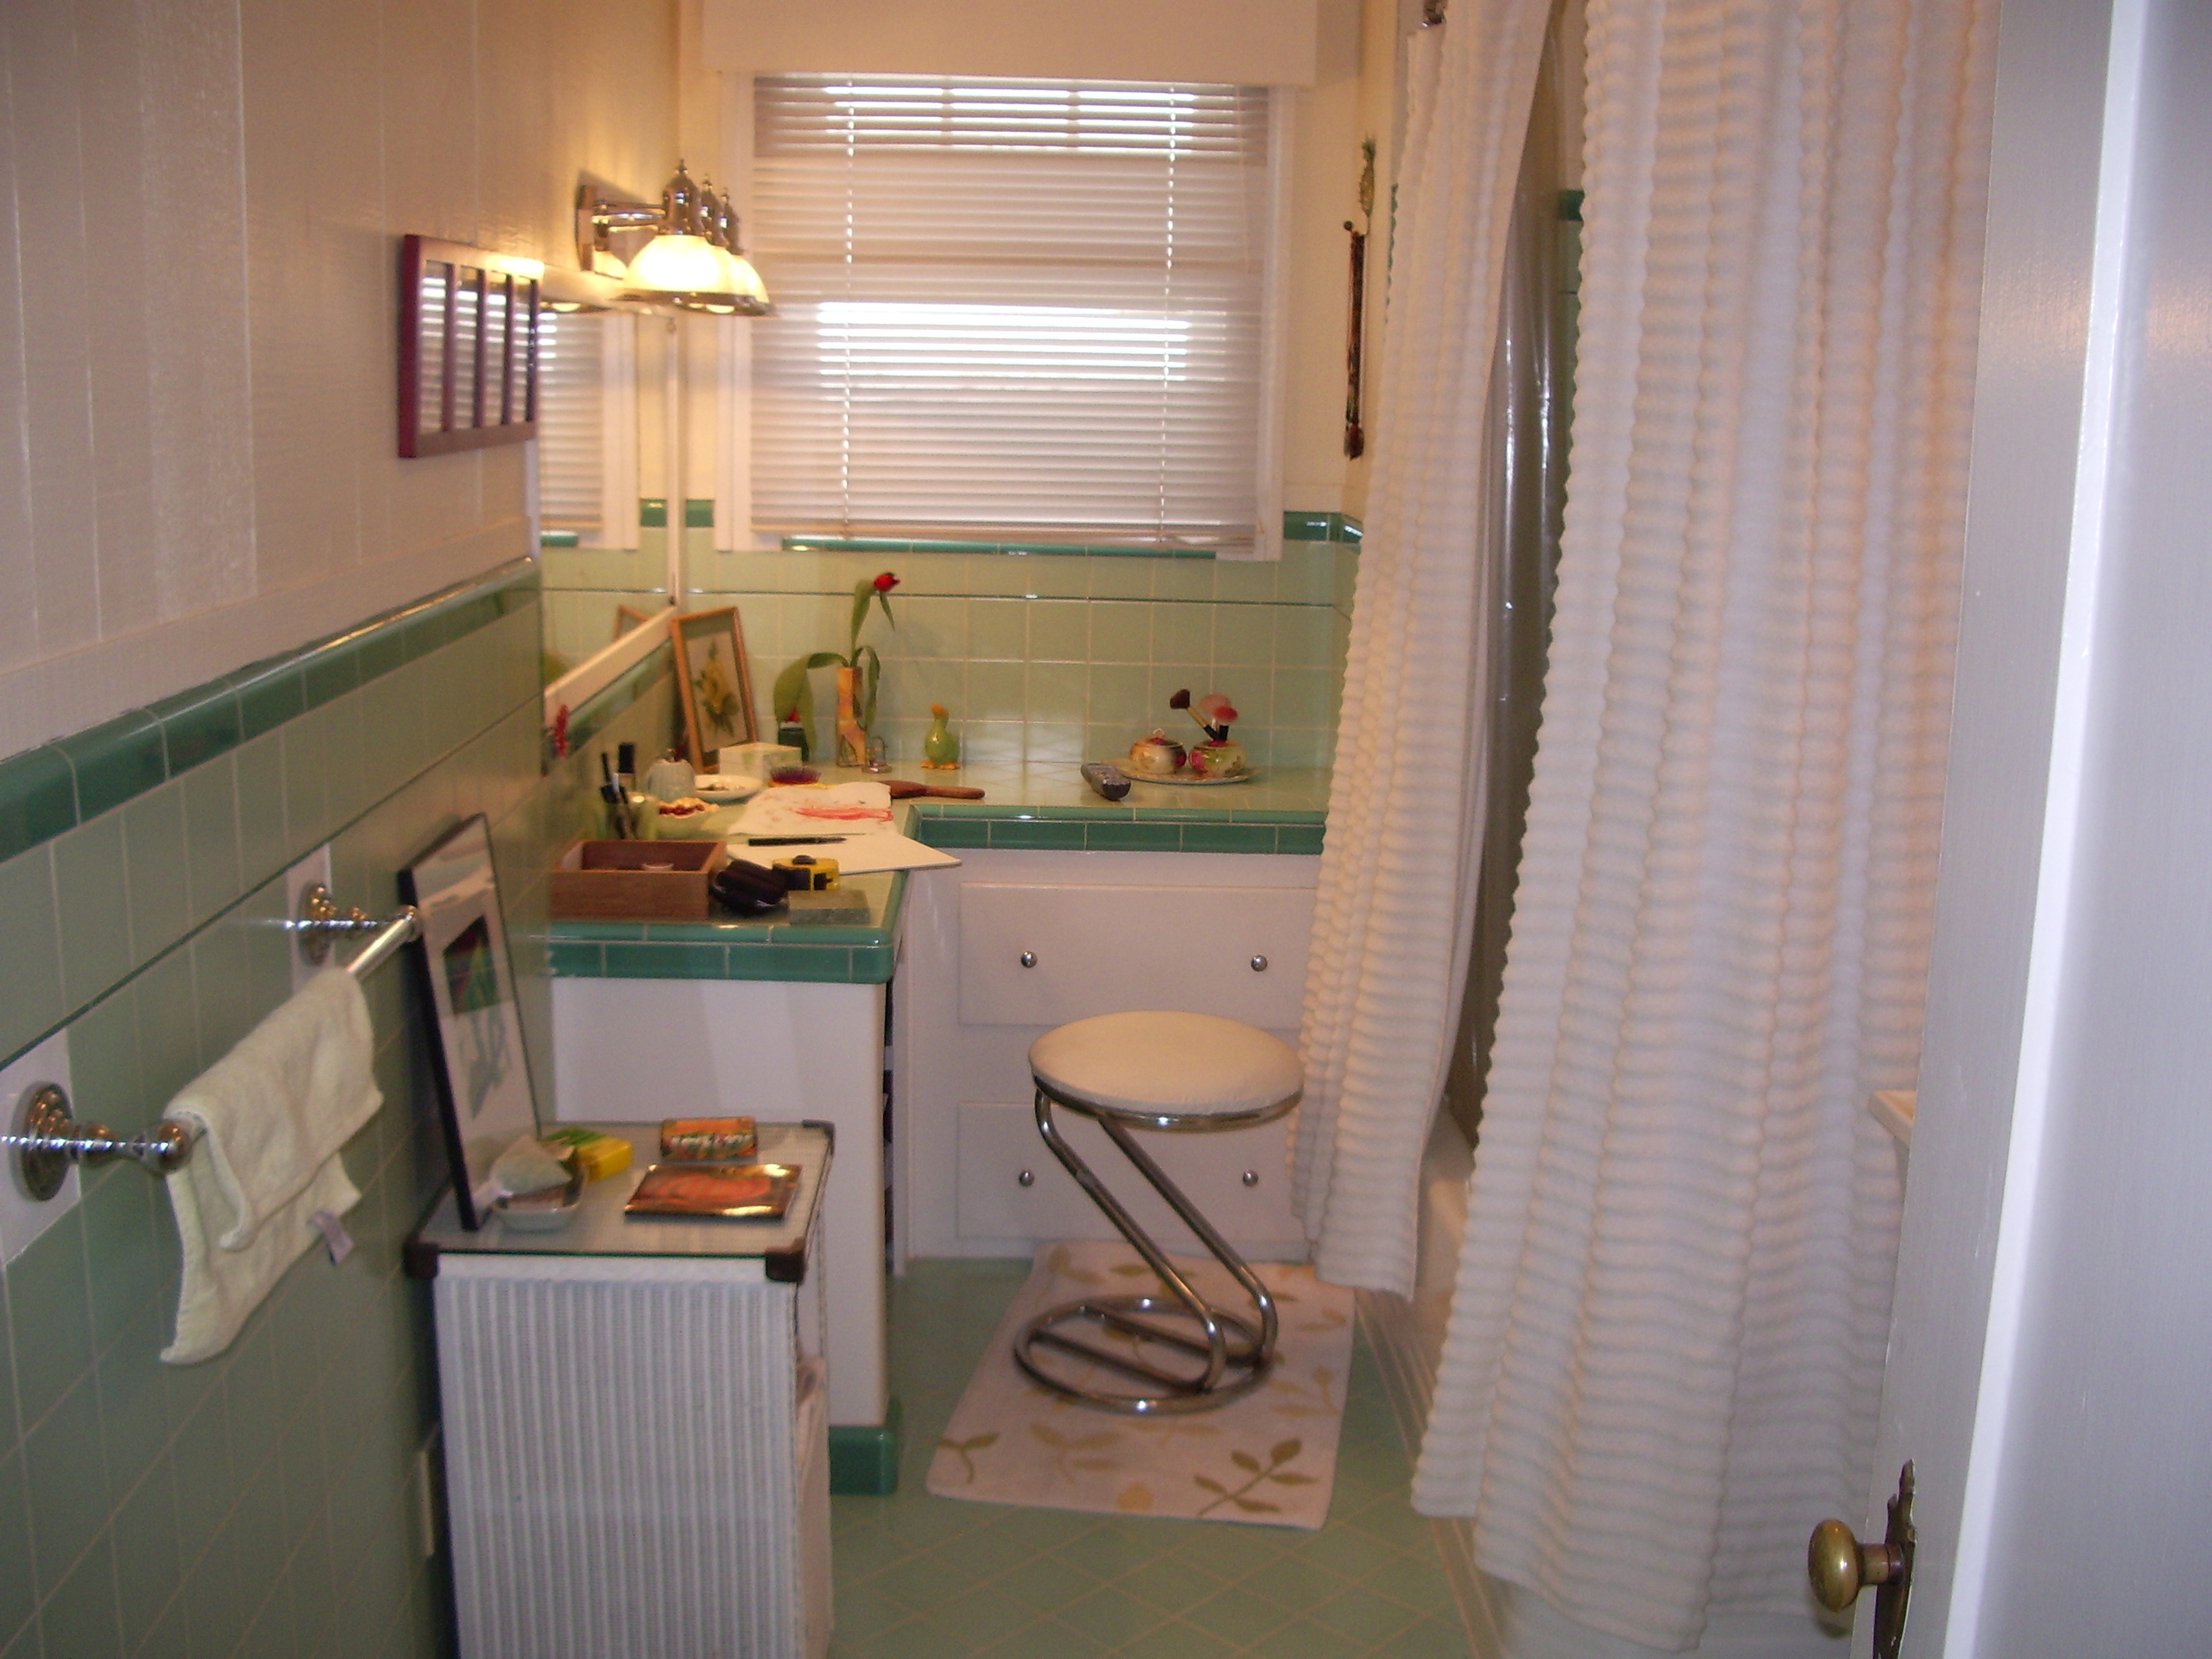 Before:Painted wood cabinets, cloth shower curtain.